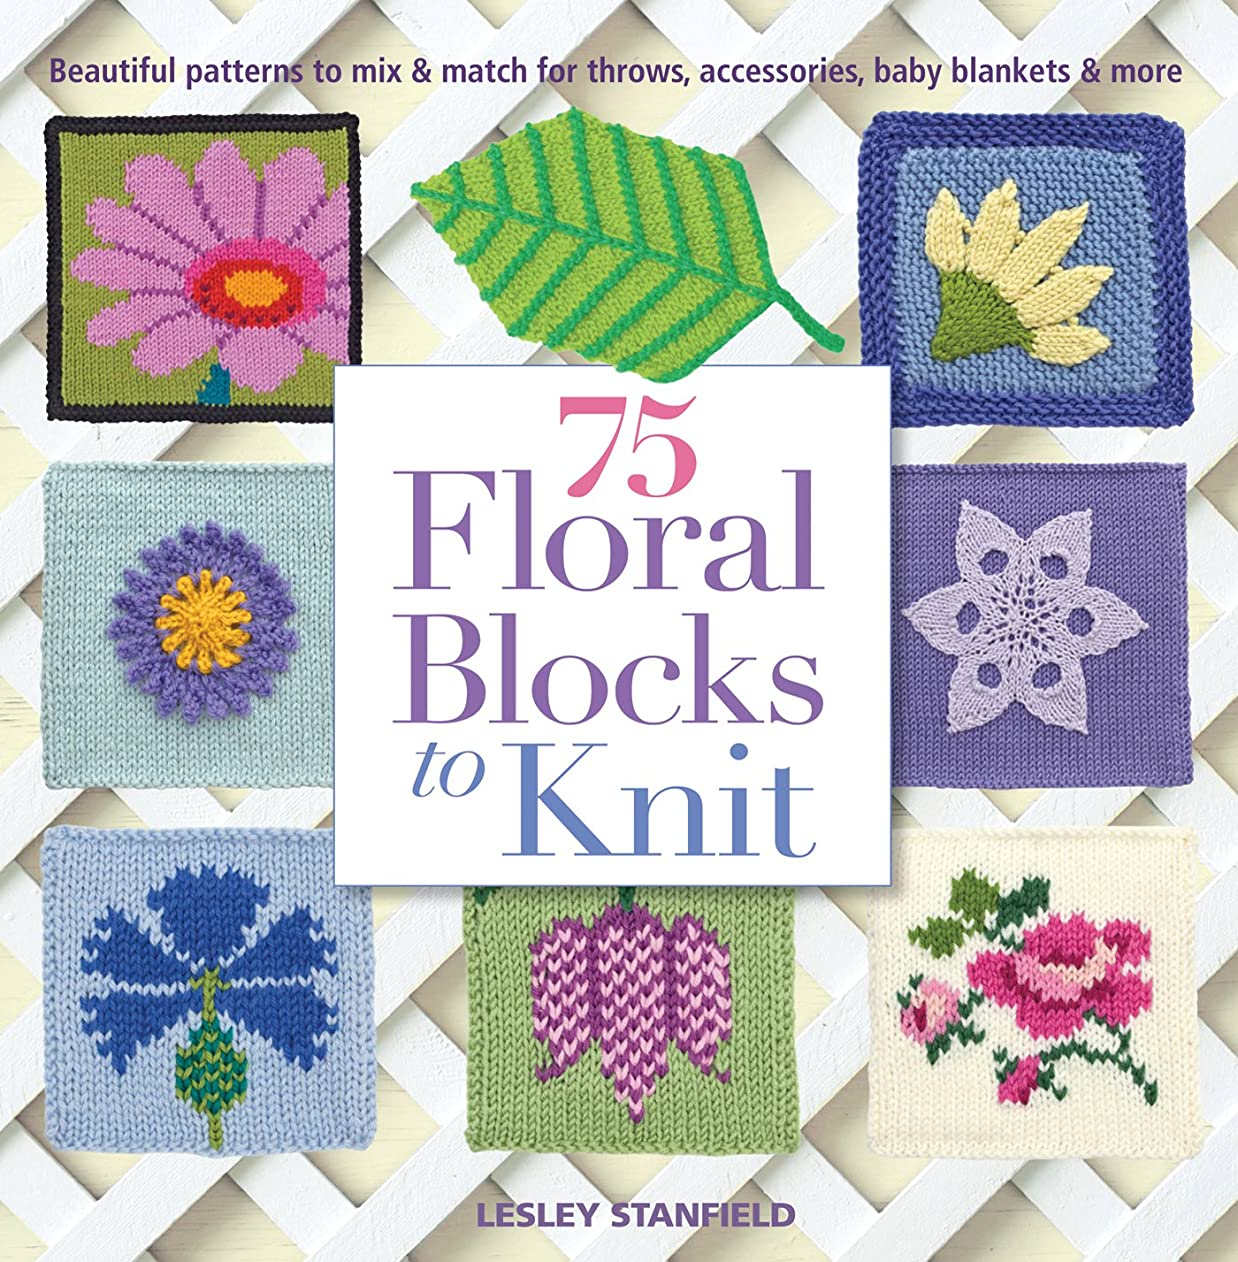 75 Floral Blocks to Knit: Beautiful Patterns to Mix & Match for Throws, Accessories, Baby Blankets & More (Knit & Crochet Blocks & Squares) scptarrrtmn79405